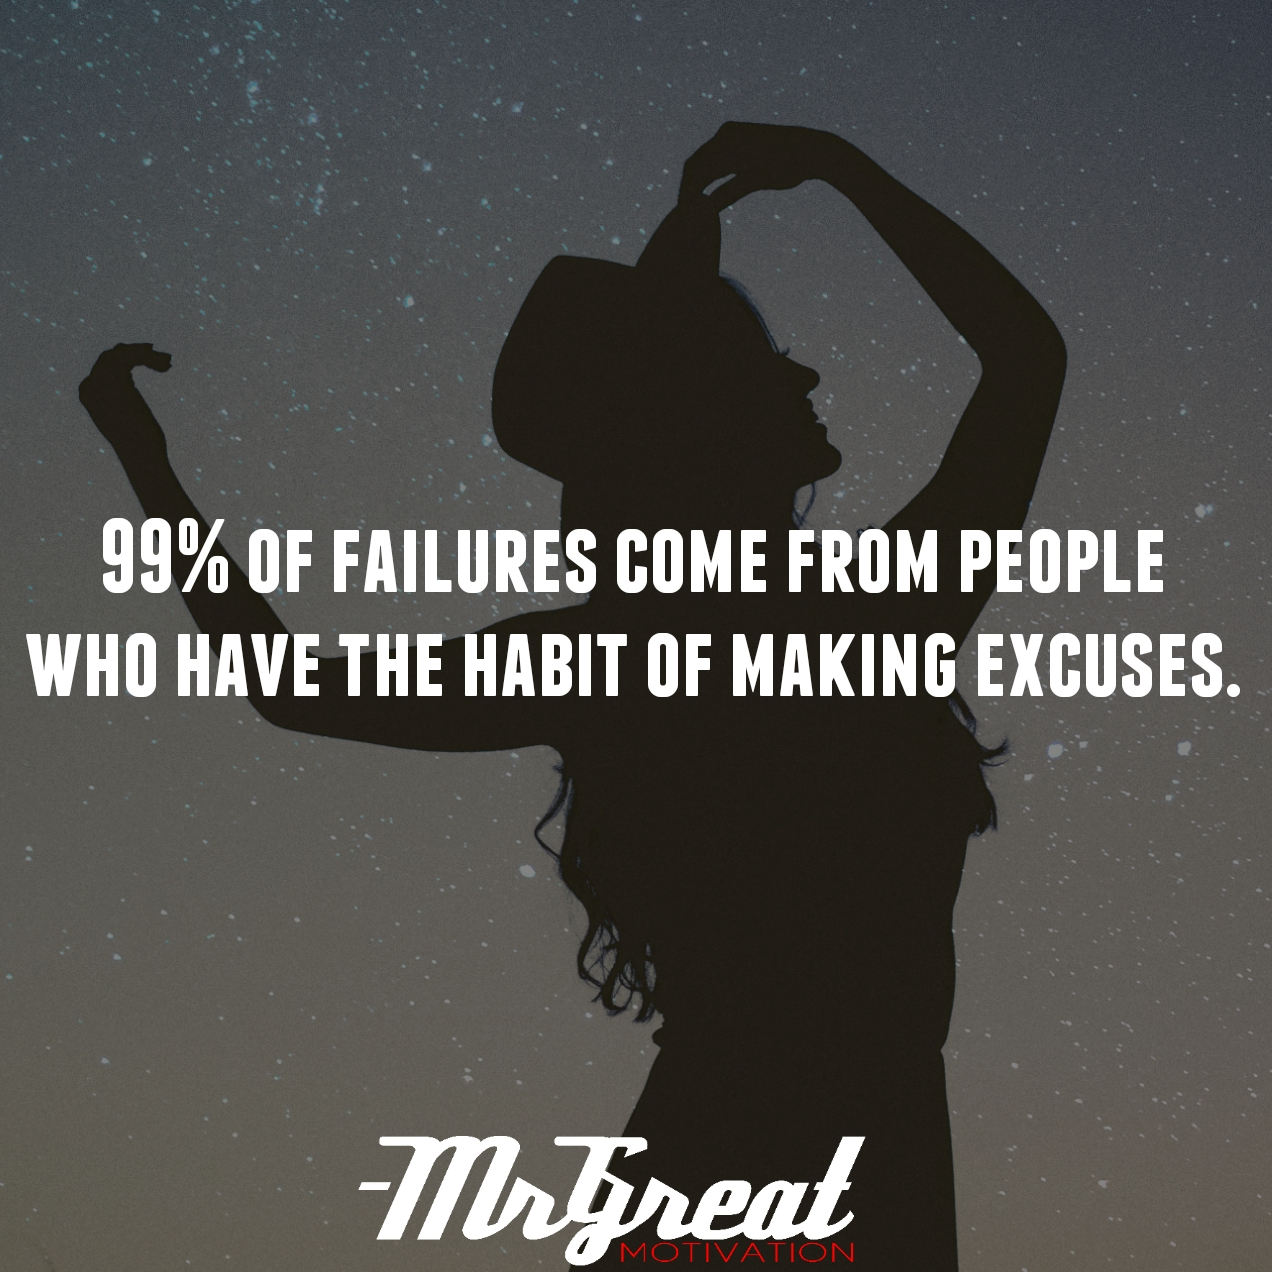 99% of failures come from people who have the habit of making excuses - George W. Carver